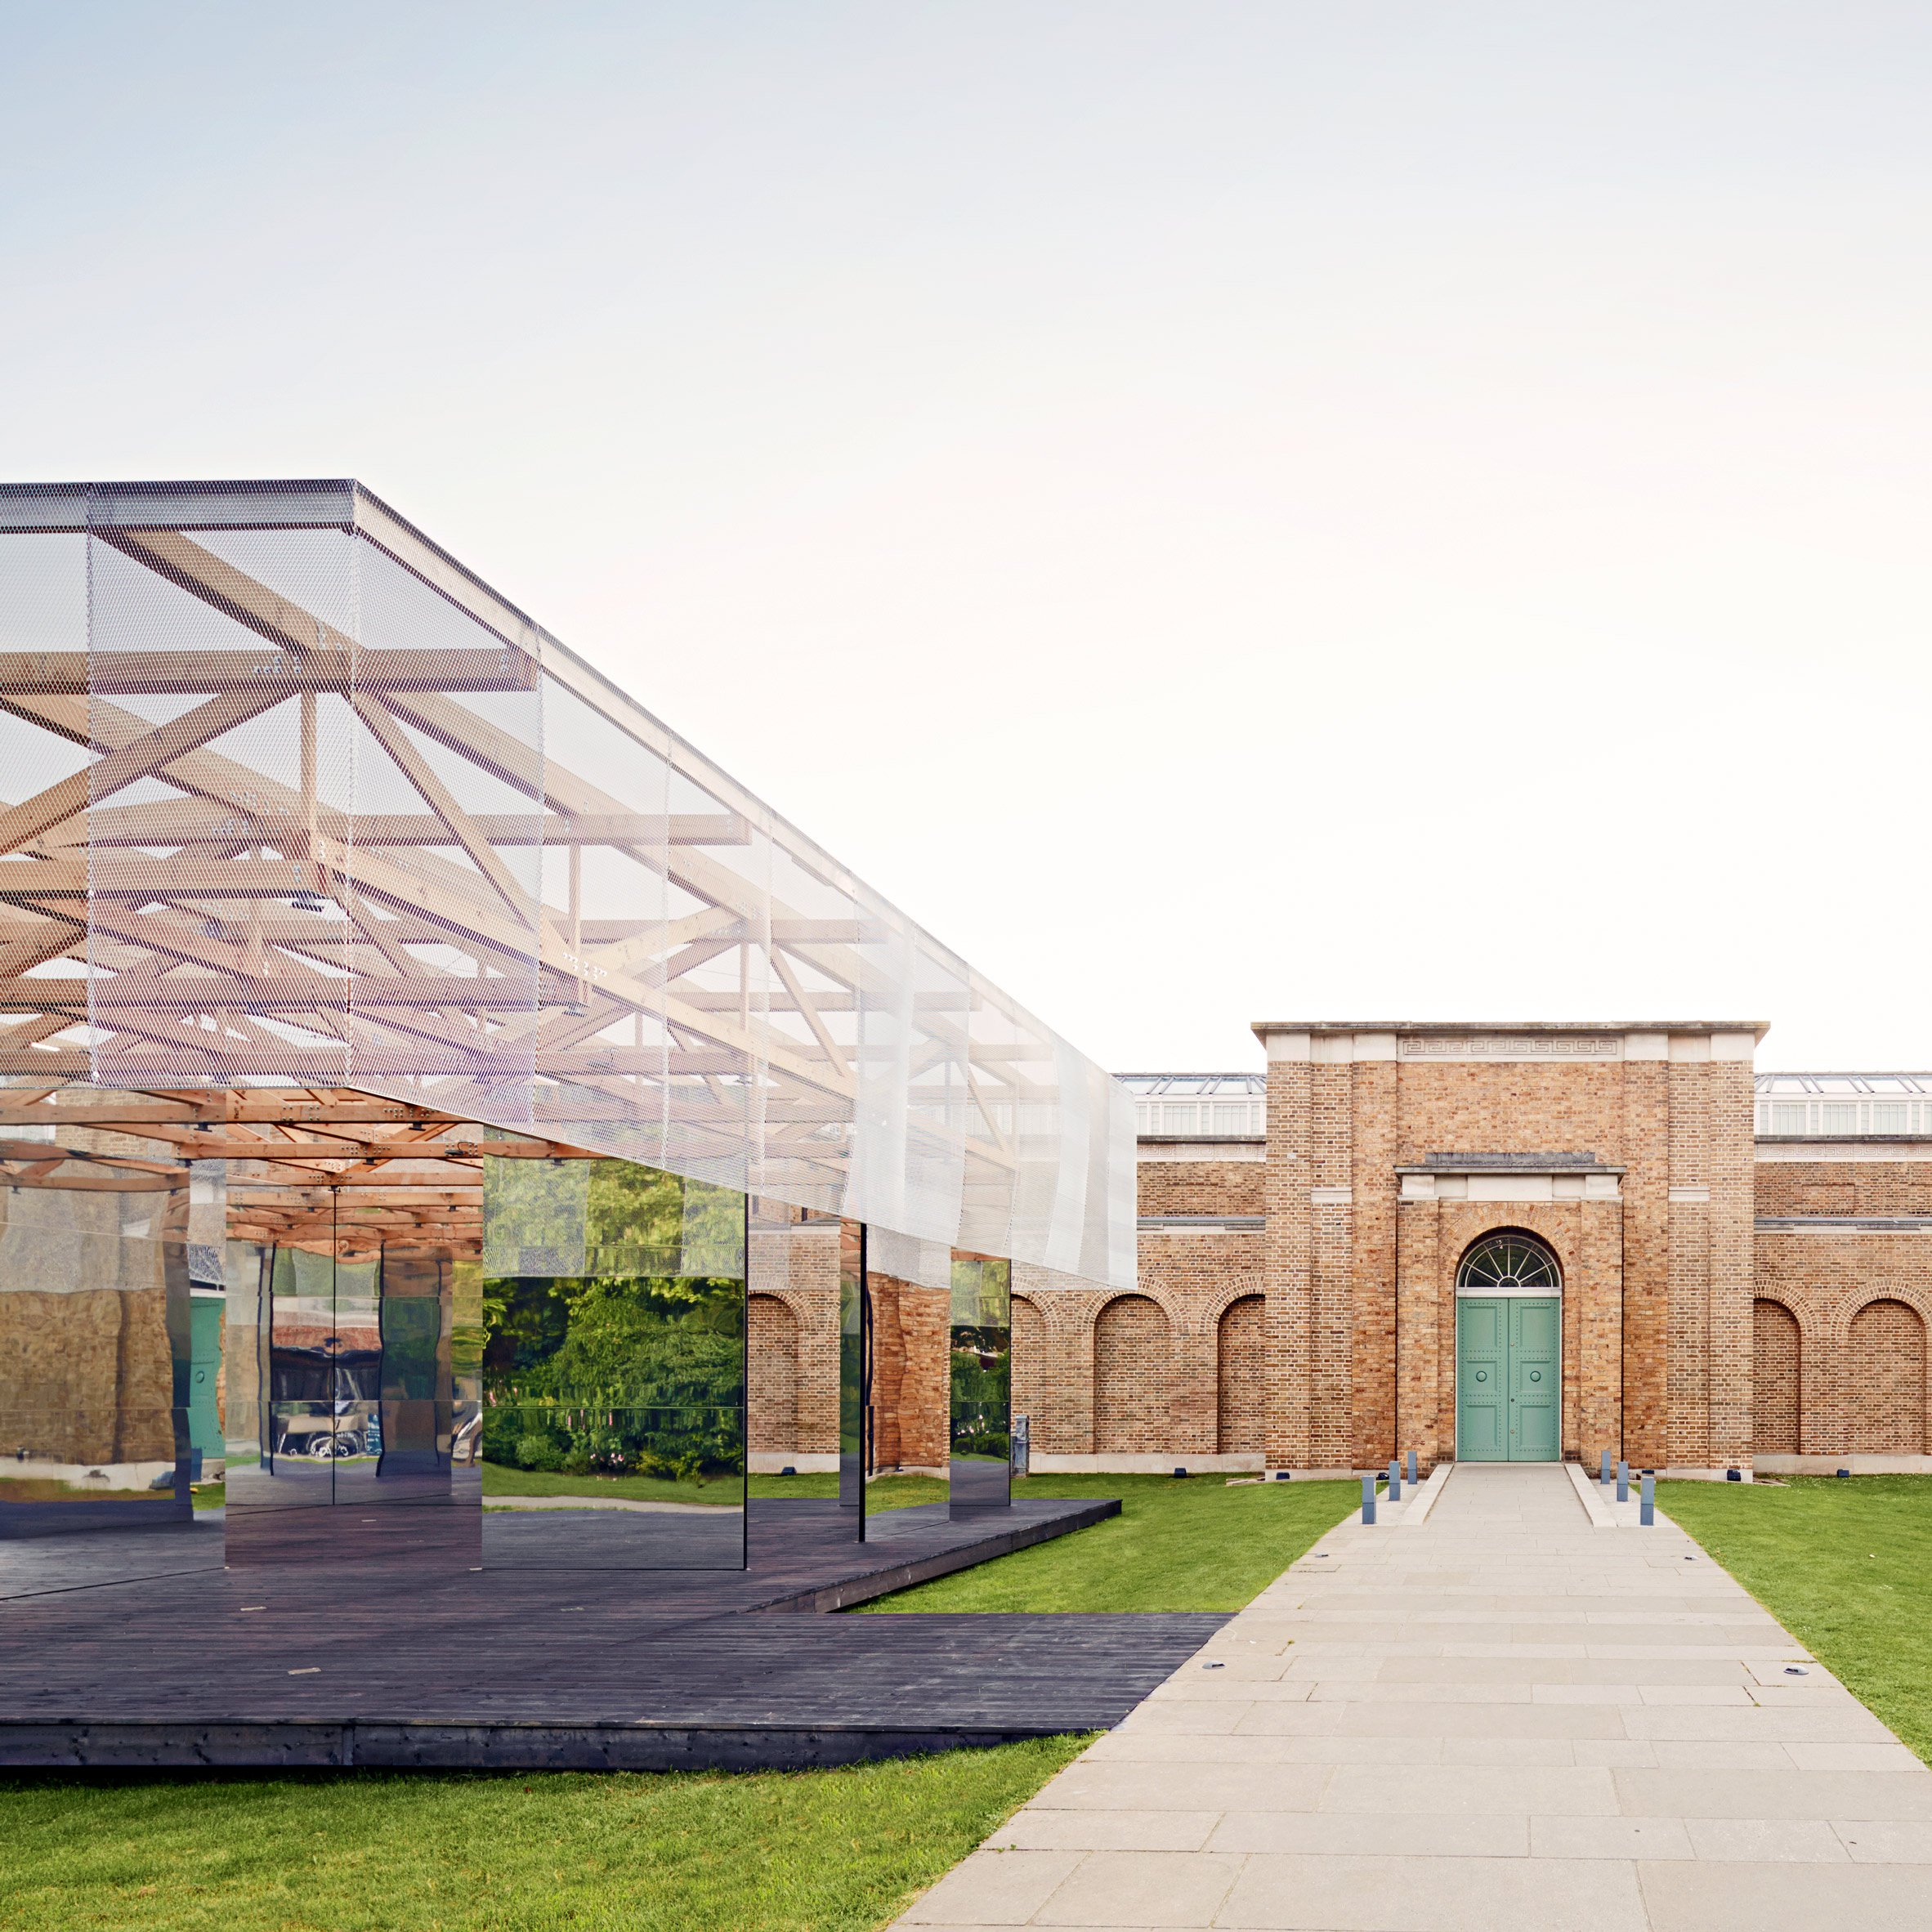 Dezeen\'s guide to the best architecture, design and tech events for 2018